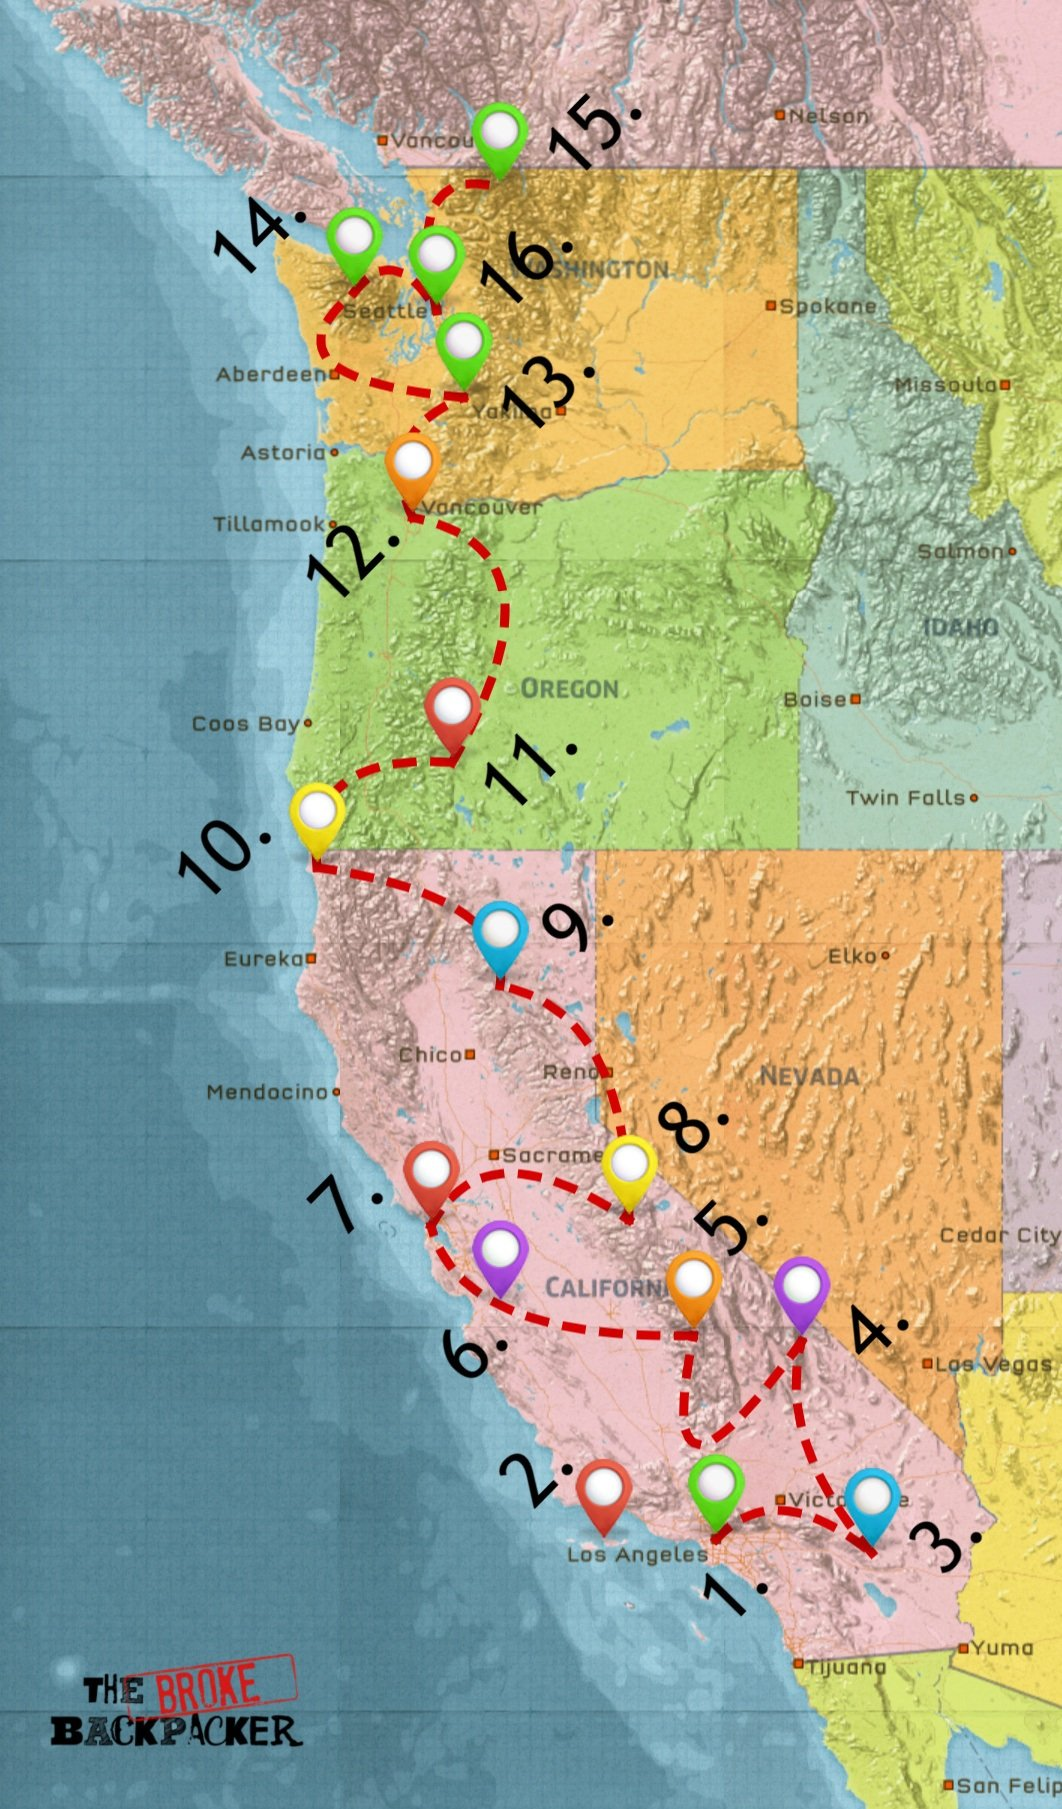 map of west coast road trip itinerary 10 days